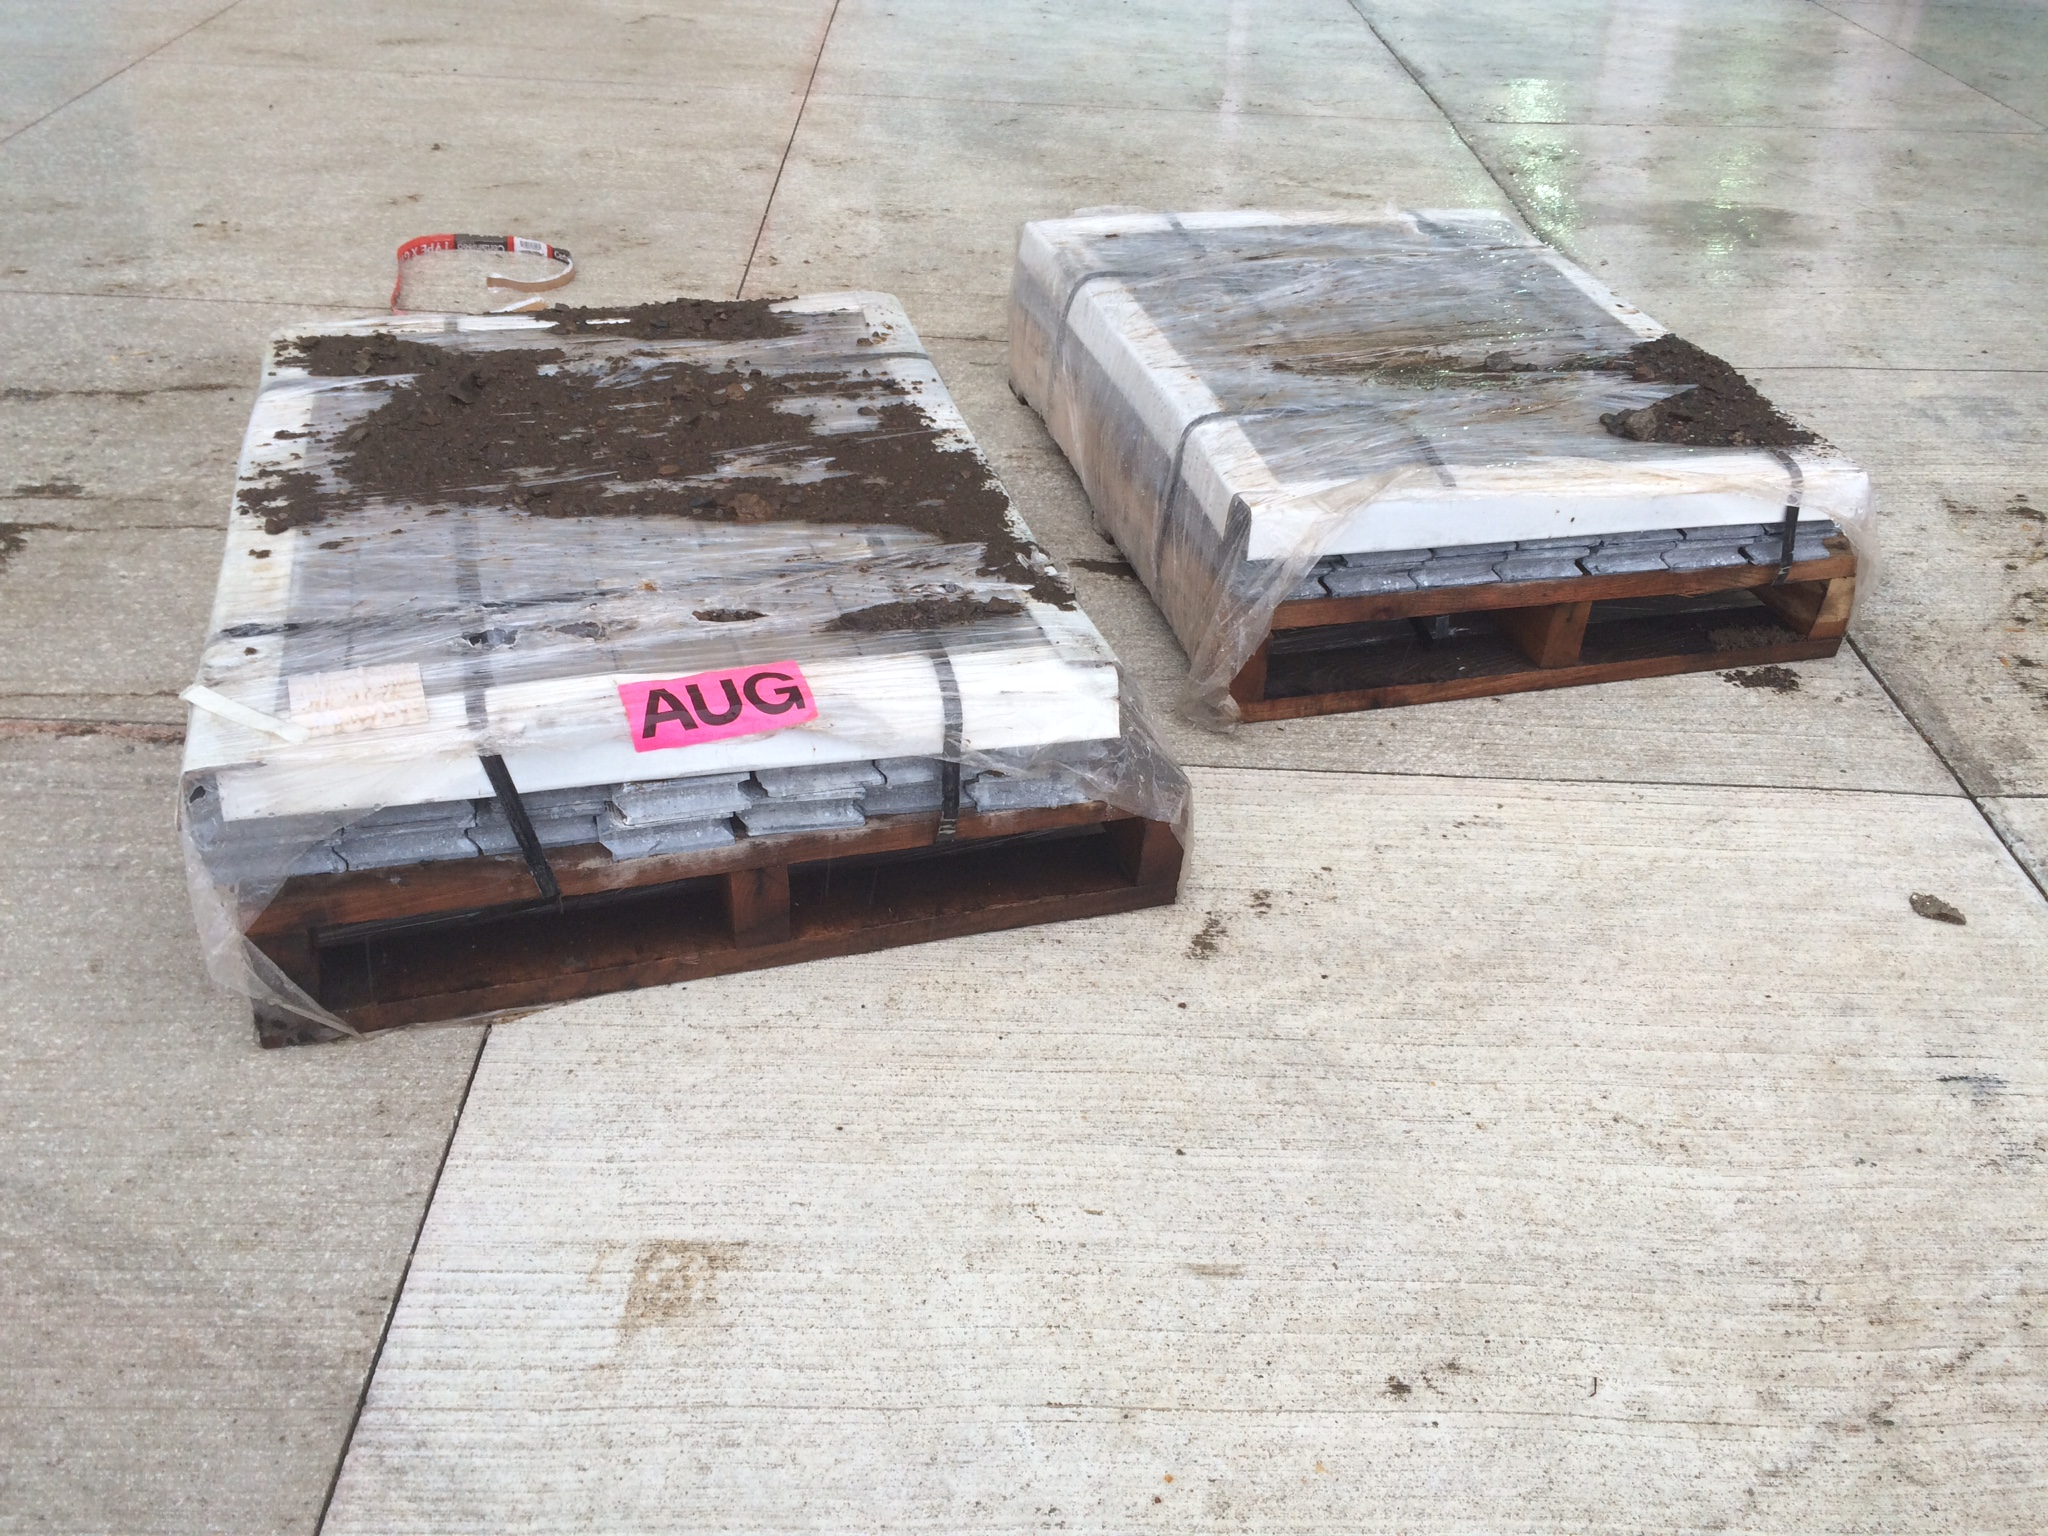 Pallets of lead bricks